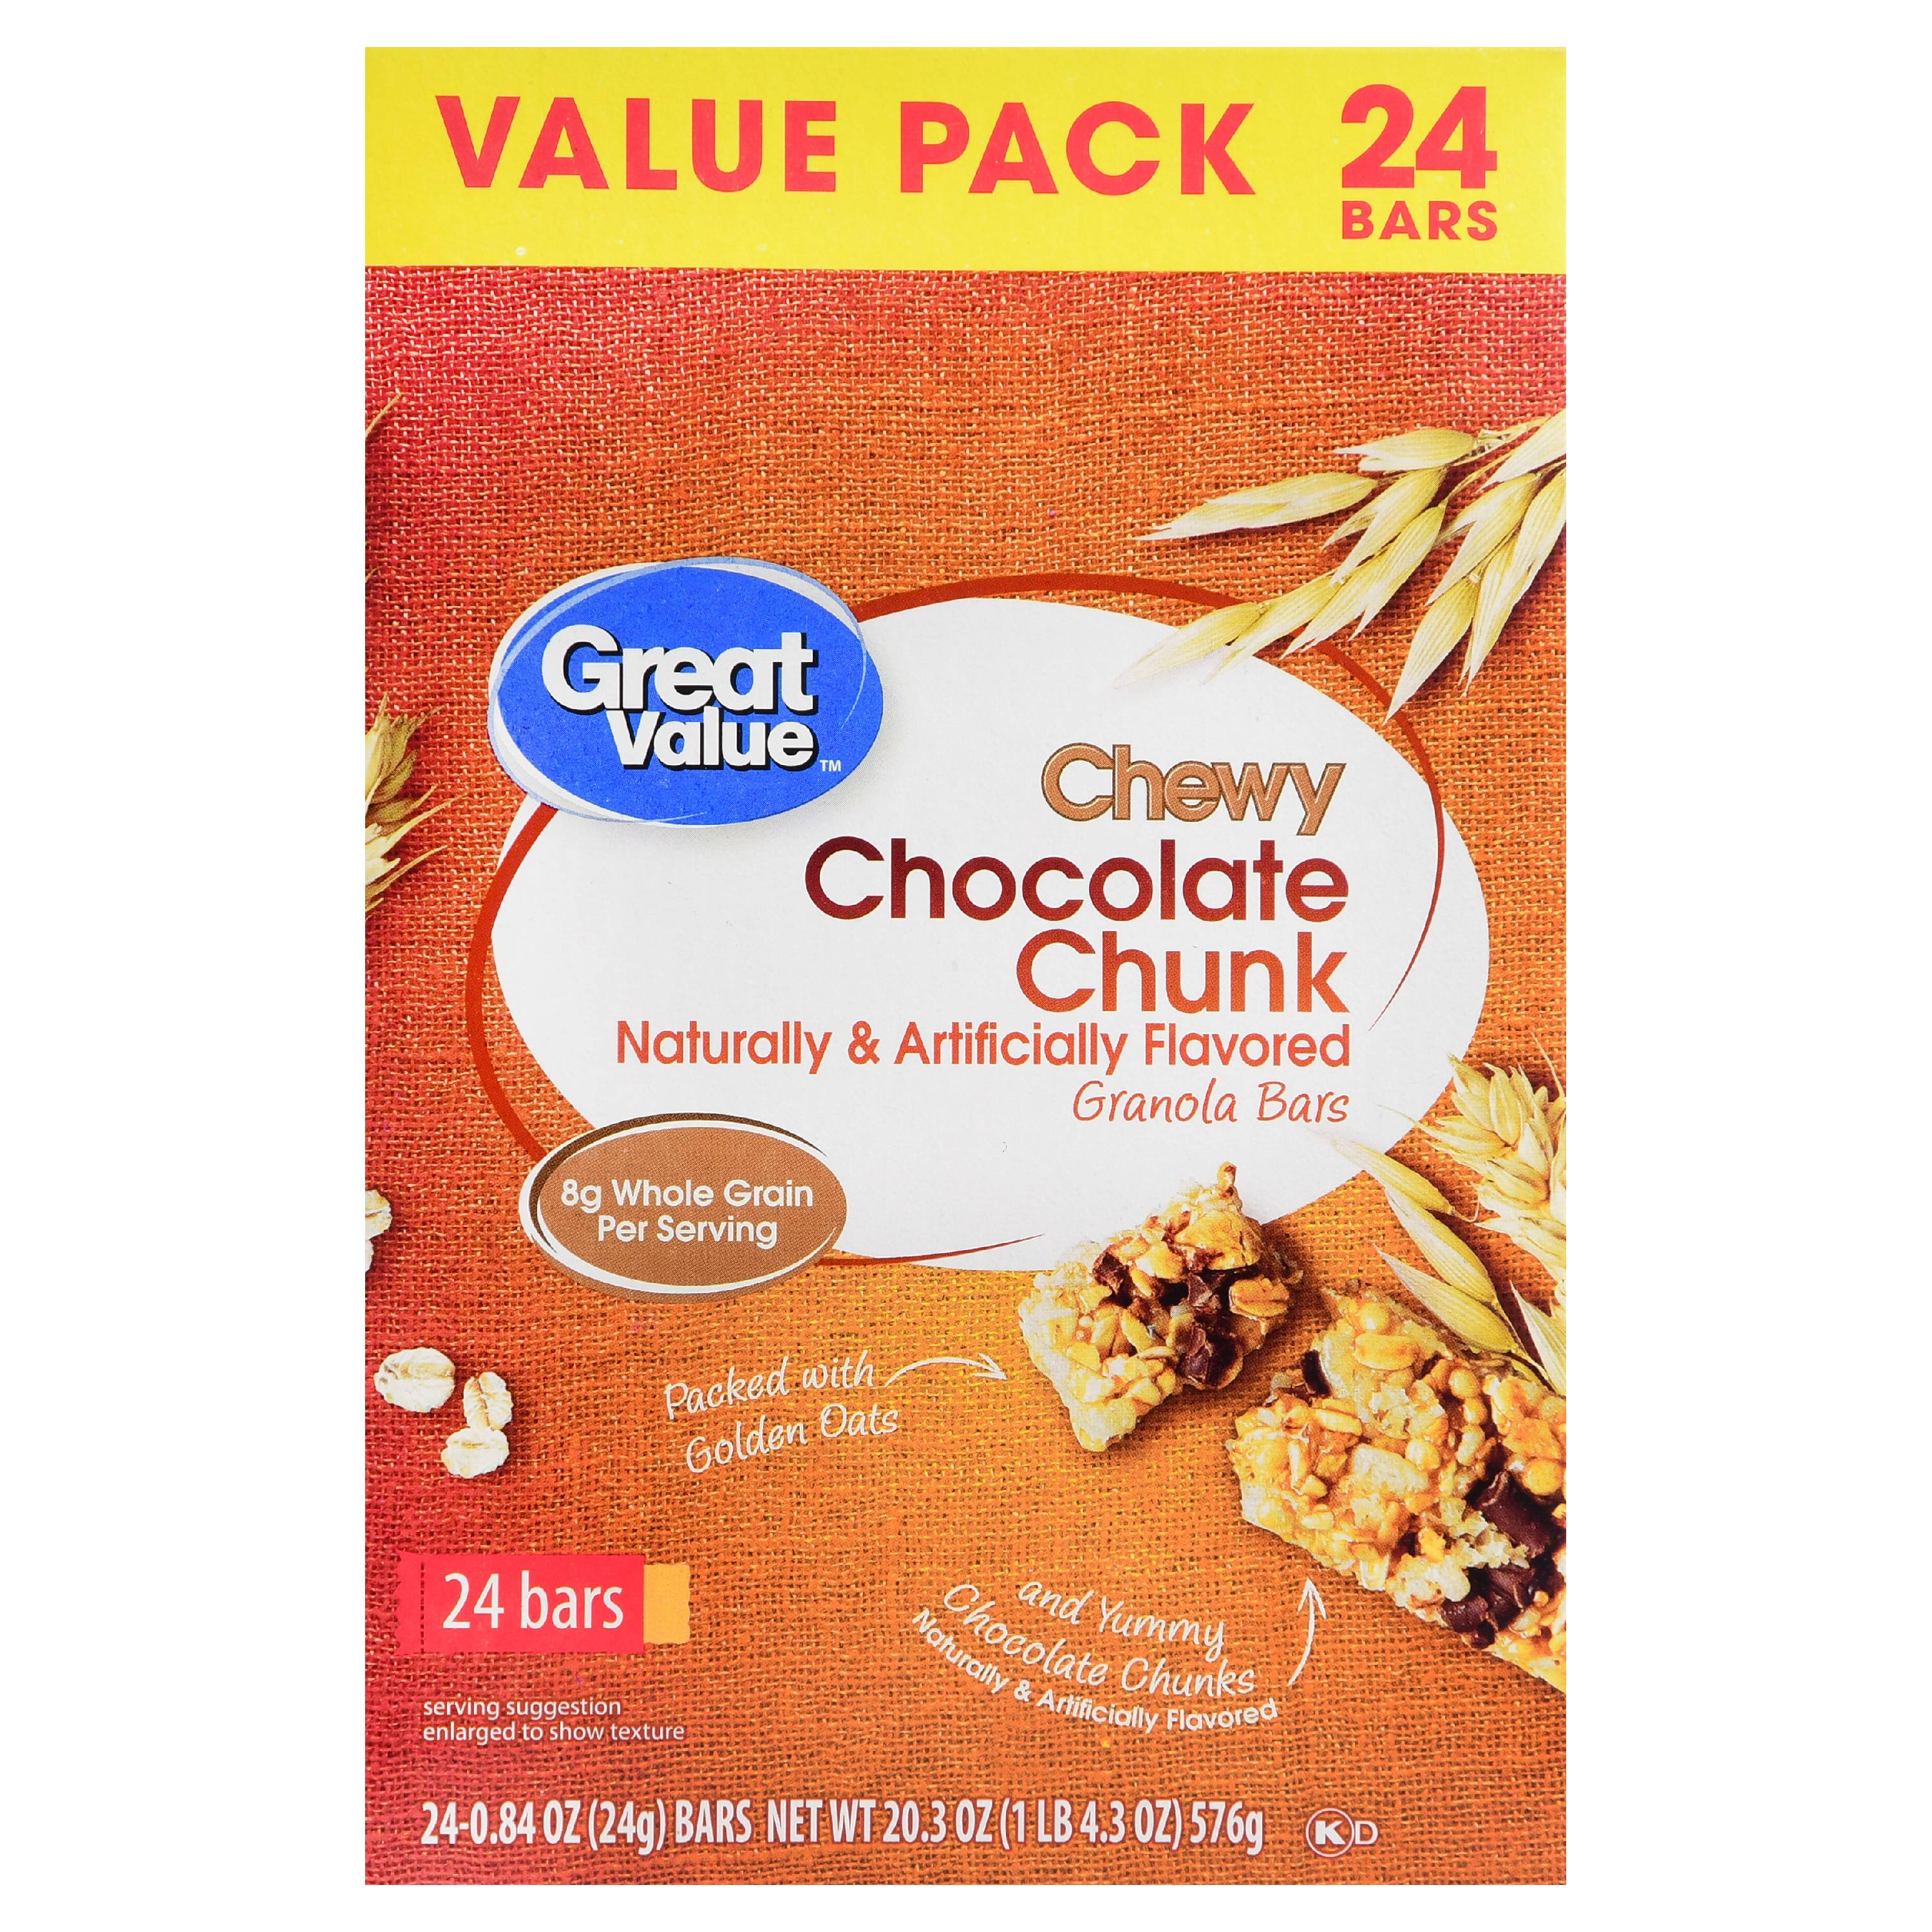 (3 Pack) Great Value Chewy Chocolate Chunk Granola Bars, Value Pack, 20.3 oz, 24 Count